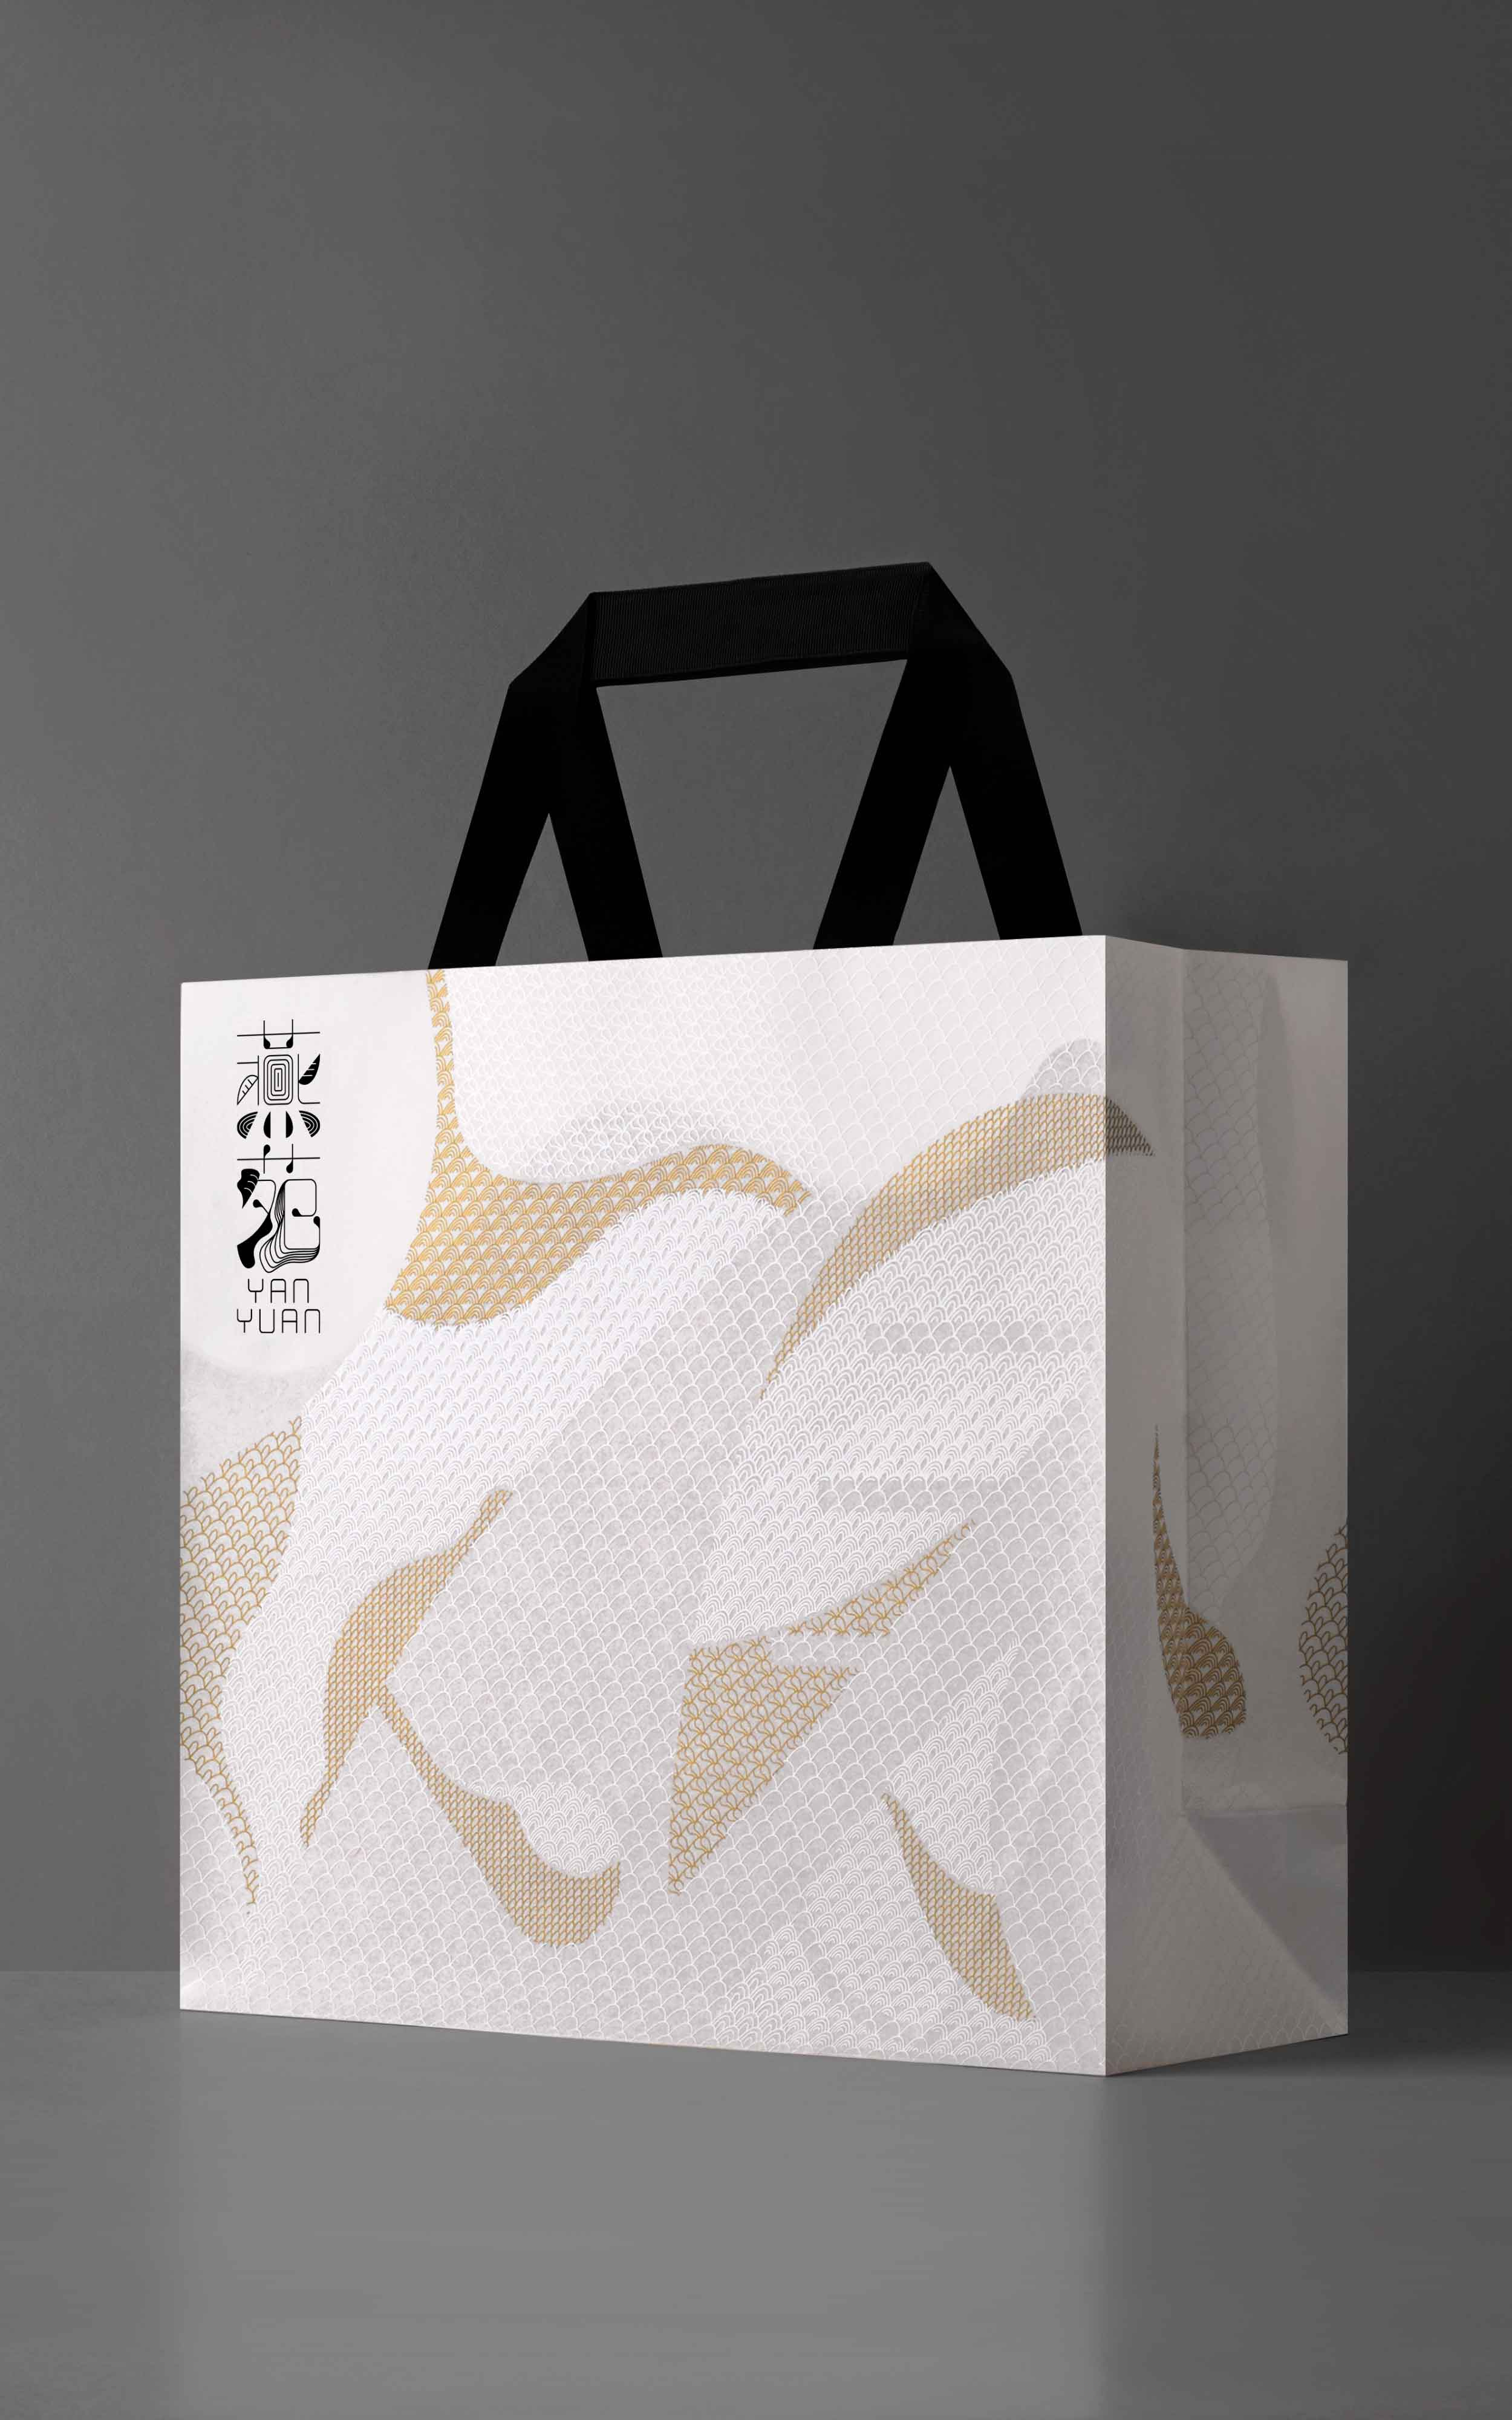 Yan Yuan – Identity for a bird's nest brand, to appeal to the younger generation